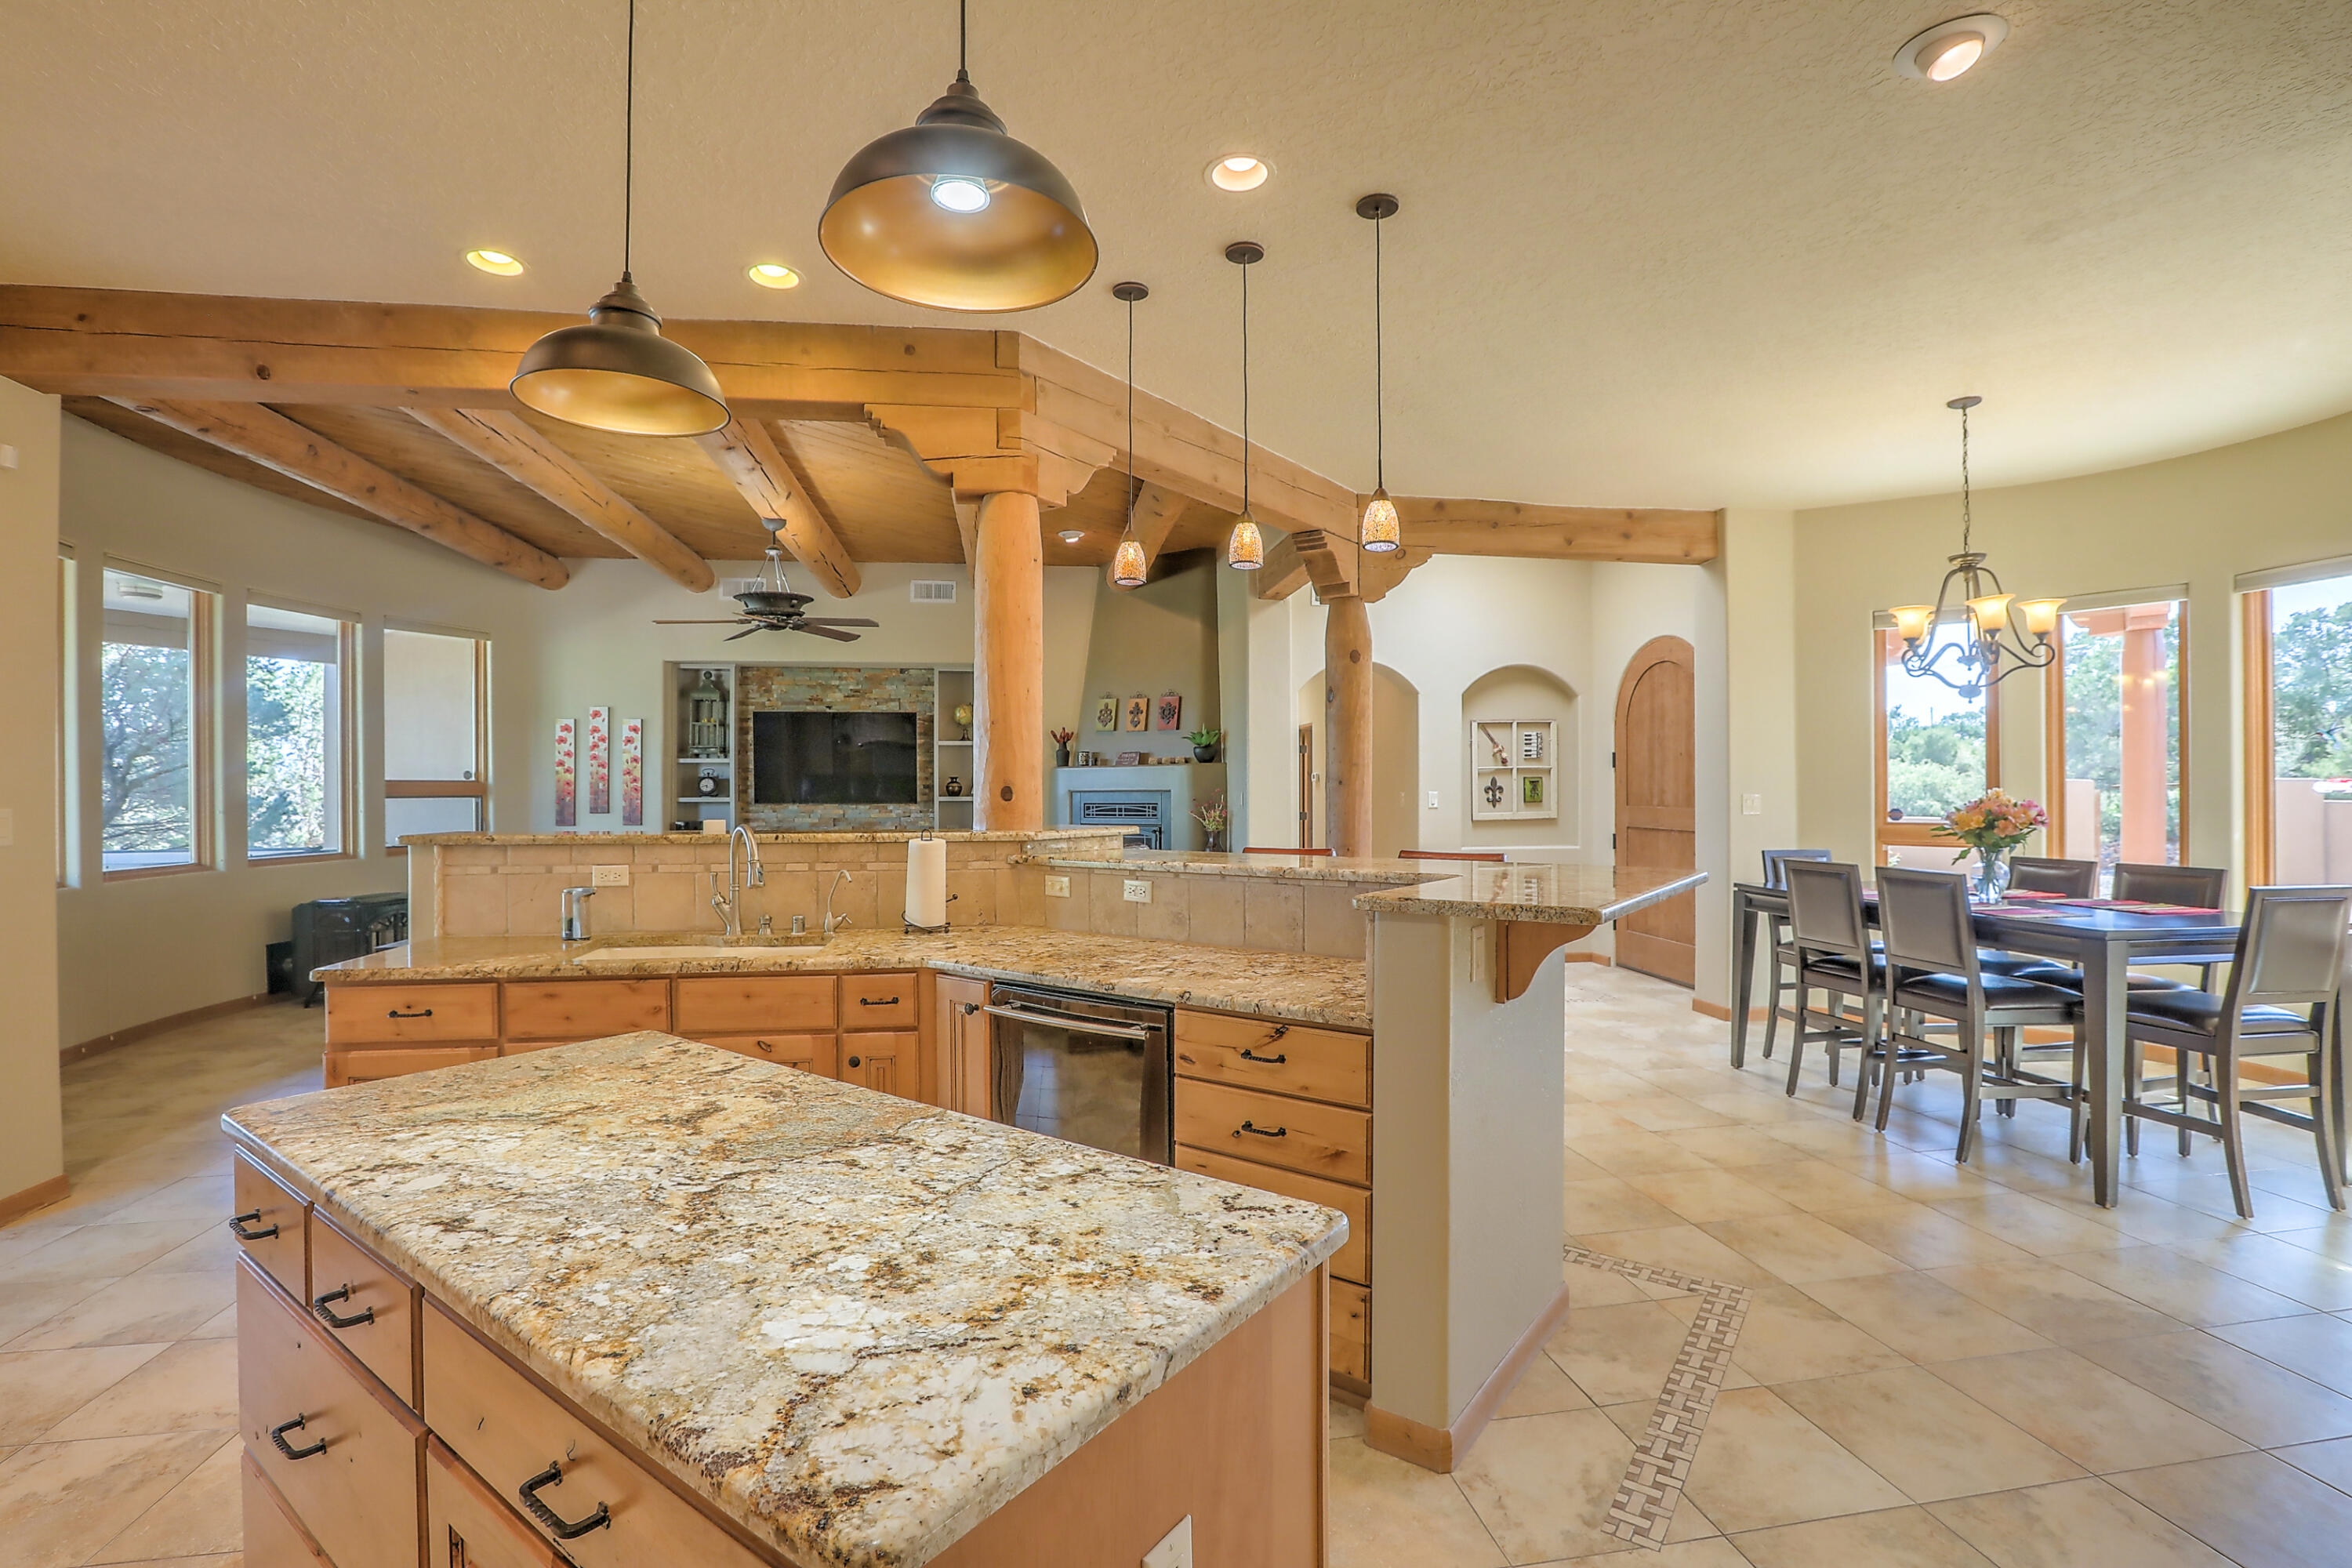 Secluded, private, custom mountain home, on a fully fenced 2.19-acre wooded lot w/2476 sqft on the main level, 527 sqft upstairs, refrigerated air, gorgeous curved walls w/Marvin wood windows, great room w/T&G beamed ceiling, stone accents, kiva fireplace, fabulous kitchen w/bar seating, alder cabinetry & granite countertops, 3 bedrooms down (2 ensuite) 2 flex rooms up (office, game room, studio) & an awesome wrap around covered deck w/breathtaking views for miles! Luxurious Owners retreat w/soaking tub, dual vanities, 2-way fireplace & private patio! Incredible, tranquil outdoor living w/over 1100 sqft of covered patio space, hot tub, fire pit, raised garden, grass, dog kennel & an 1828 sqft 4 car garage! It's the perfect fit for a live, work, play lifestyle & it could be your dream home!